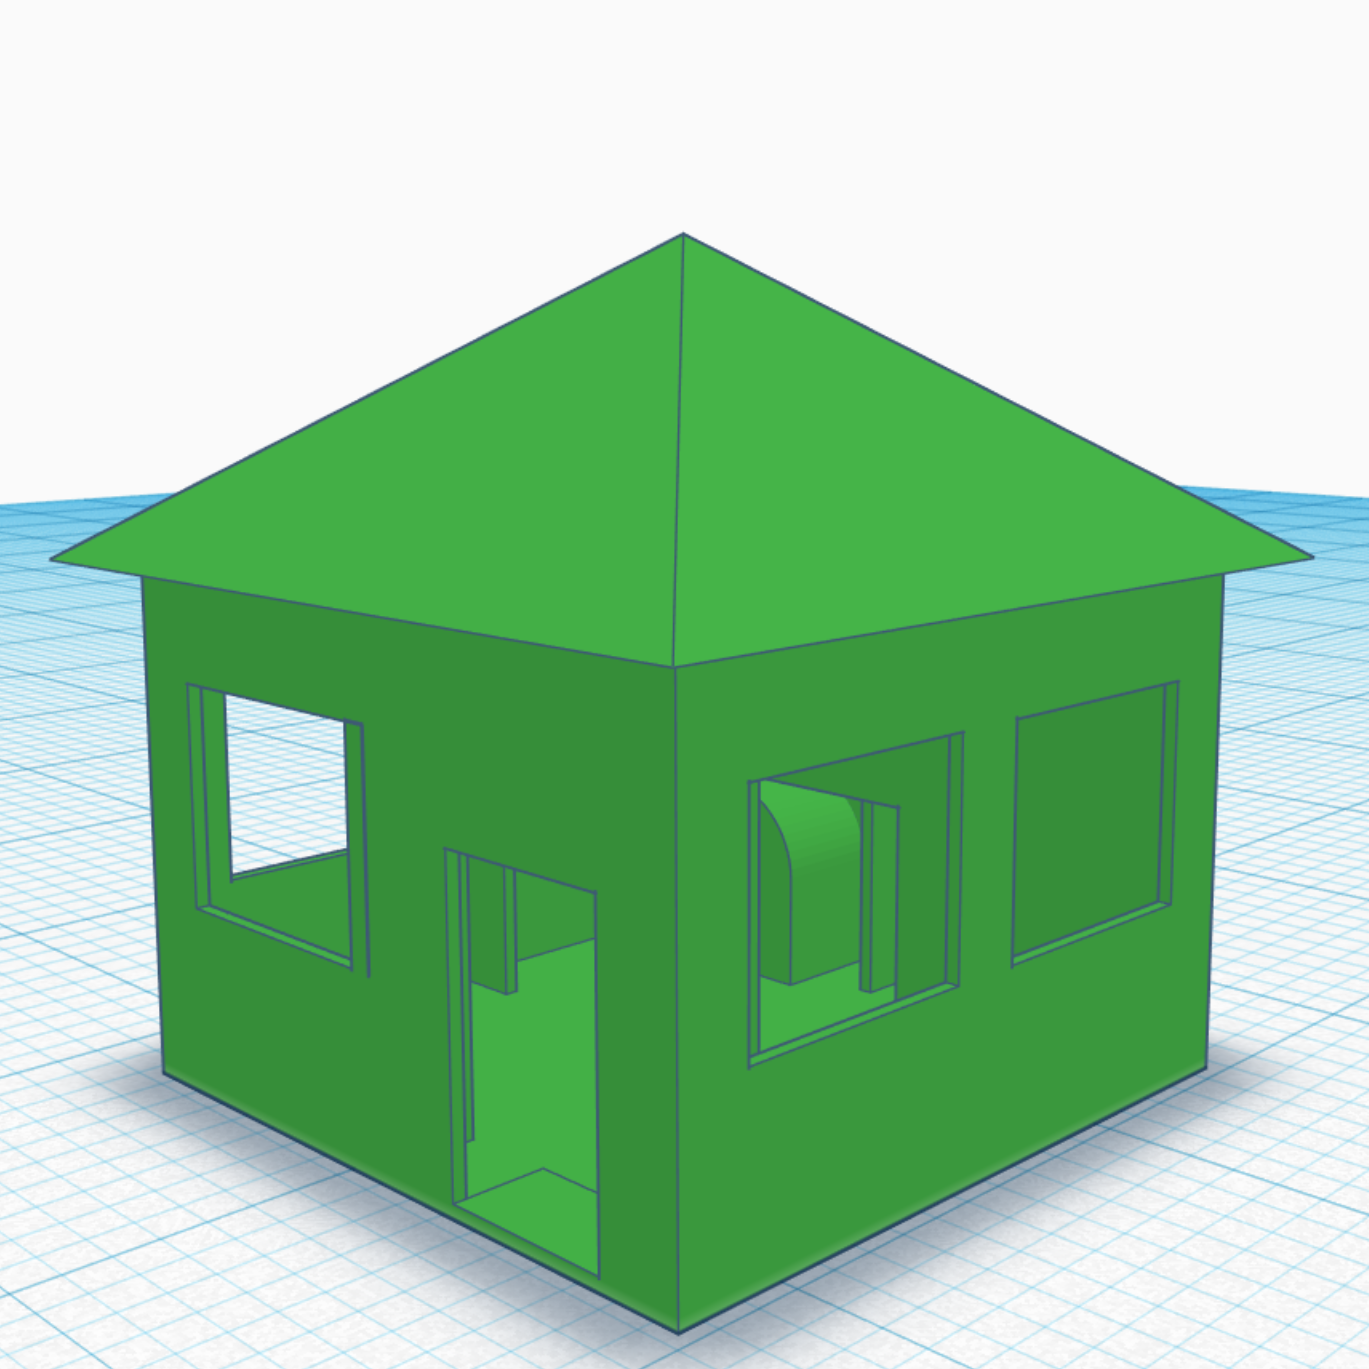 Screenshot (48).png Download free STL file House • 3D printer object, Lisu_001